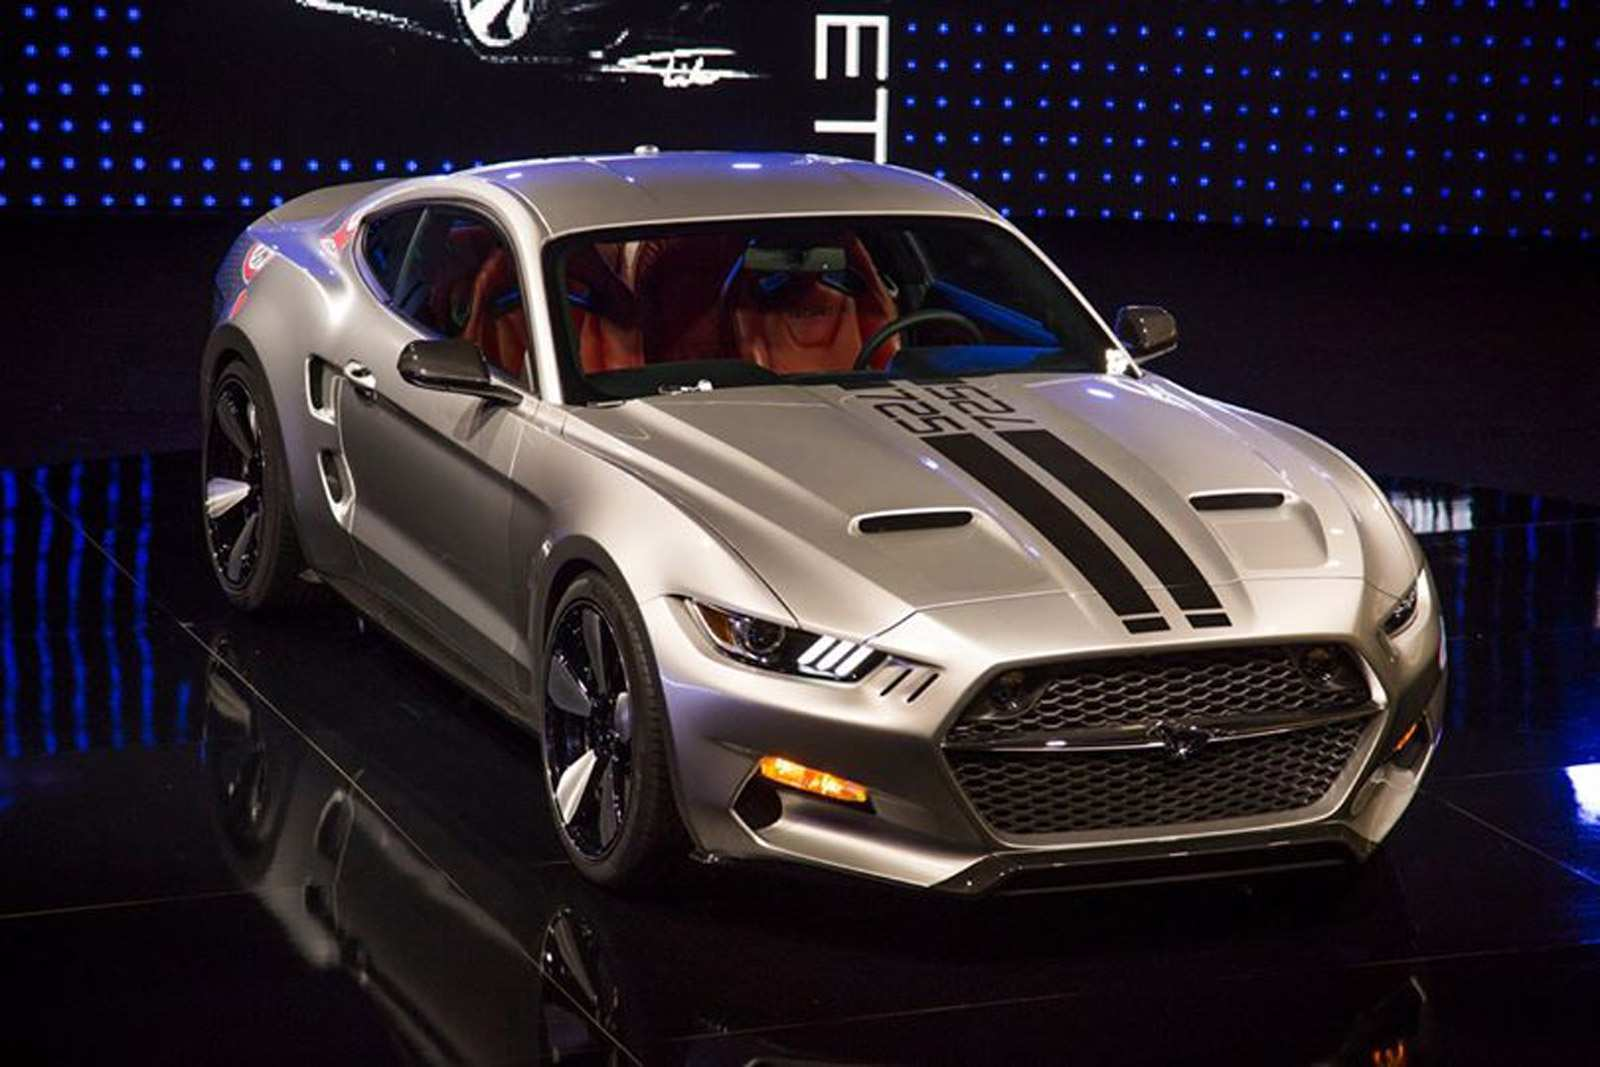 93 The Best 2019 Mustang Rocket Price Design And Review